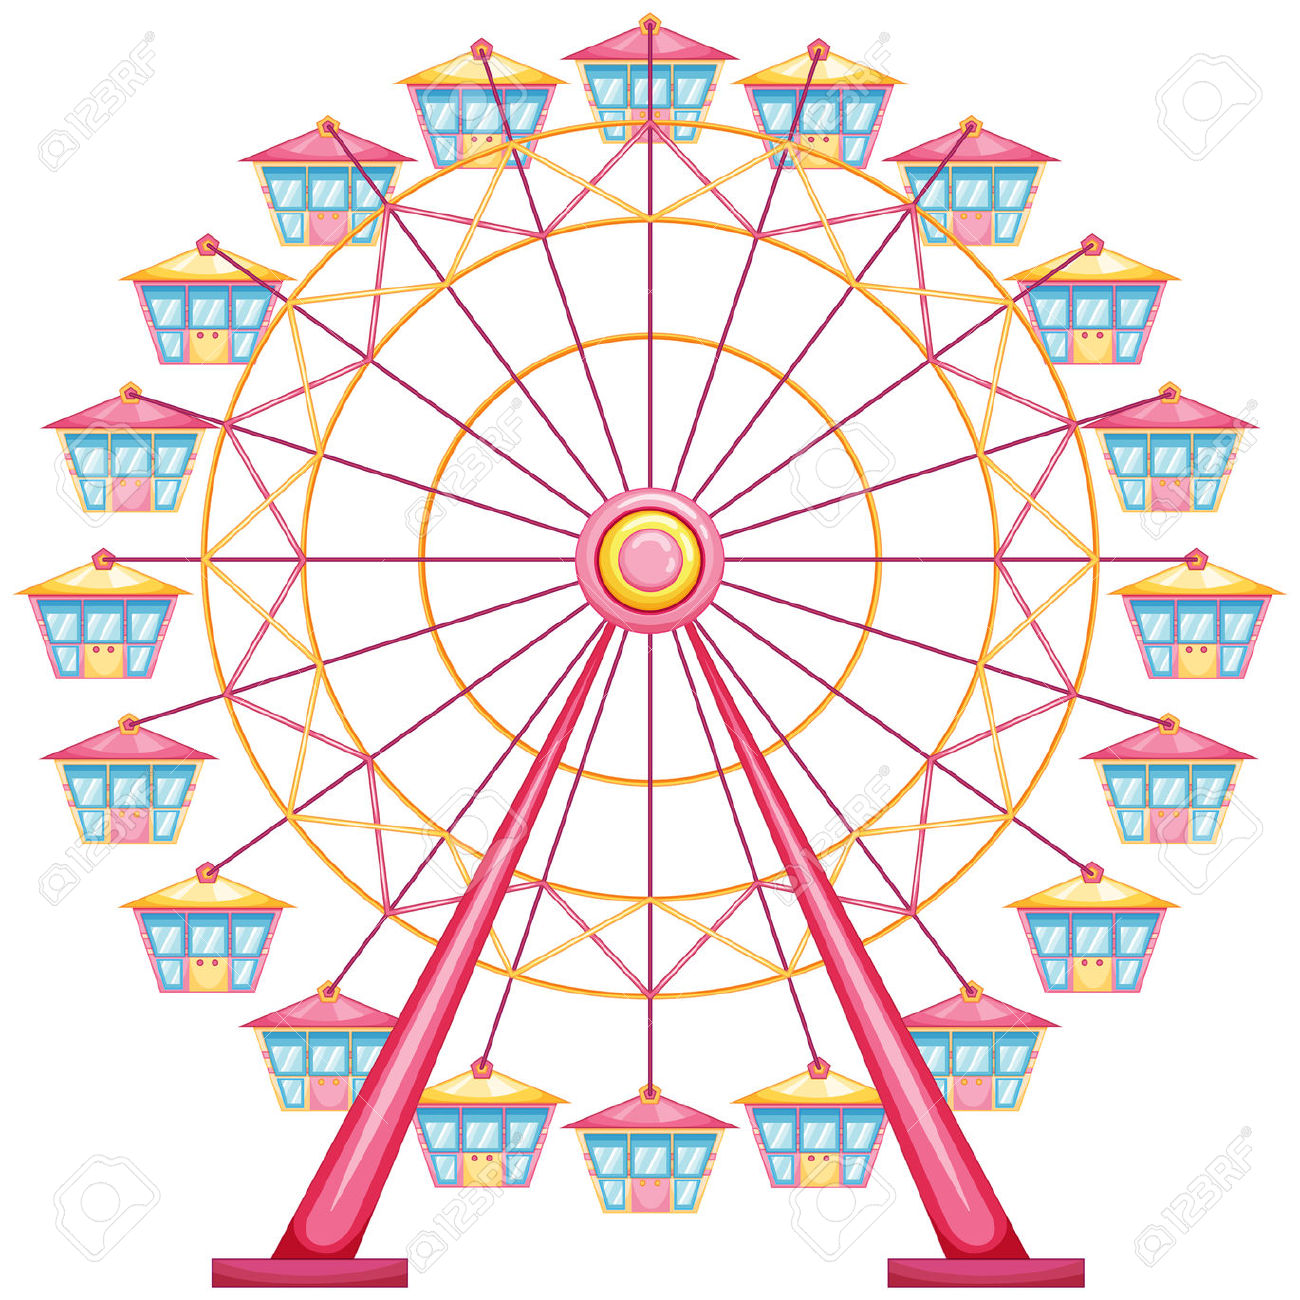 Ferris wheel clipart 2-Ferris wheel clipart 2-4